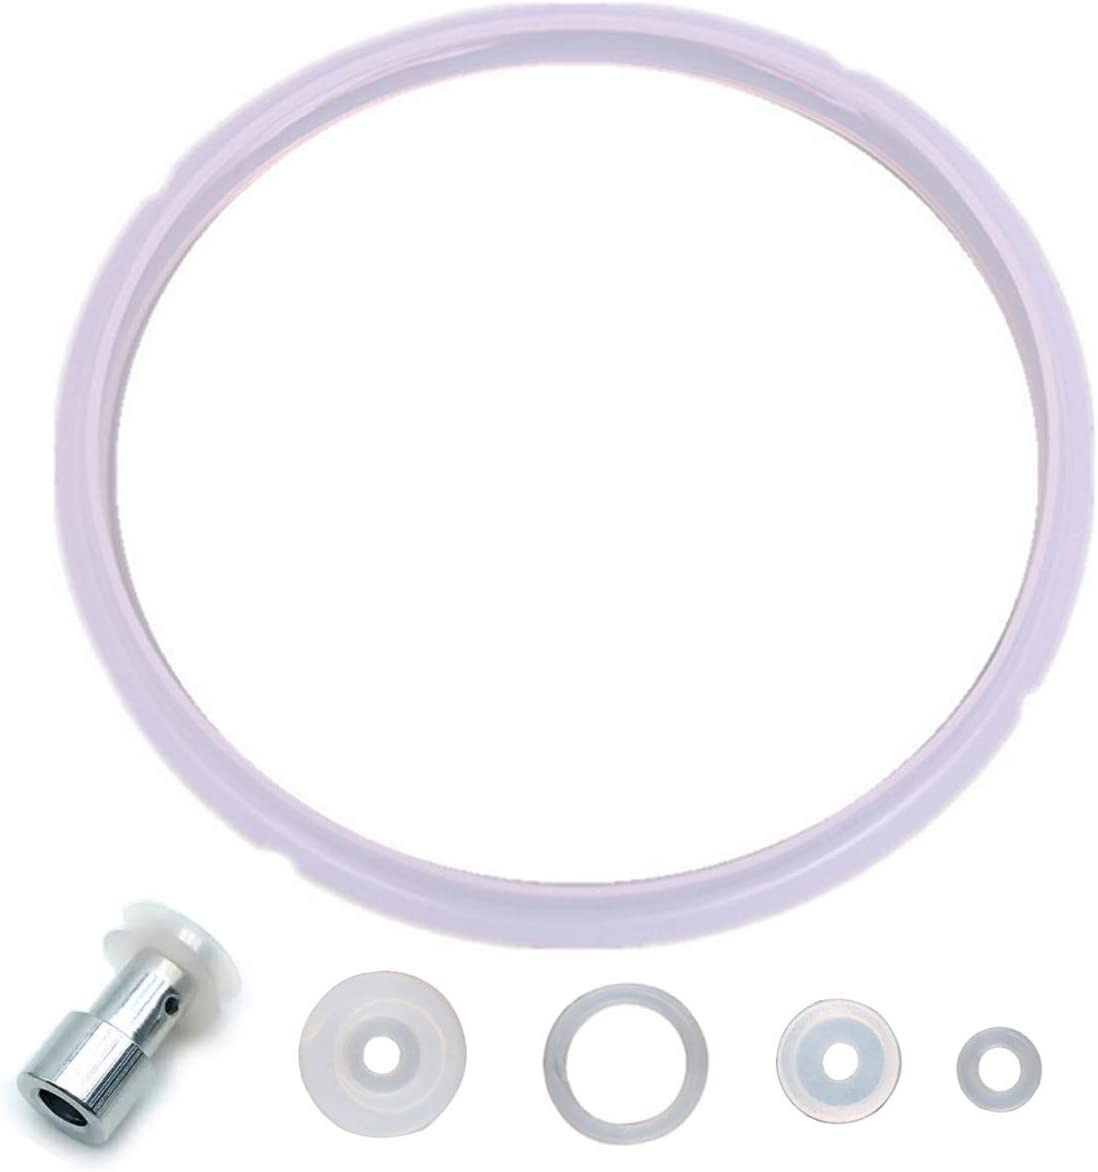 Universal Replacement Silicone Sealing Gaskets Float Valve Sealer Parts Set for 5 or 6 Quart Pressure Cooker Models for YBD60-100, PPC780, PPC770 and PPC790